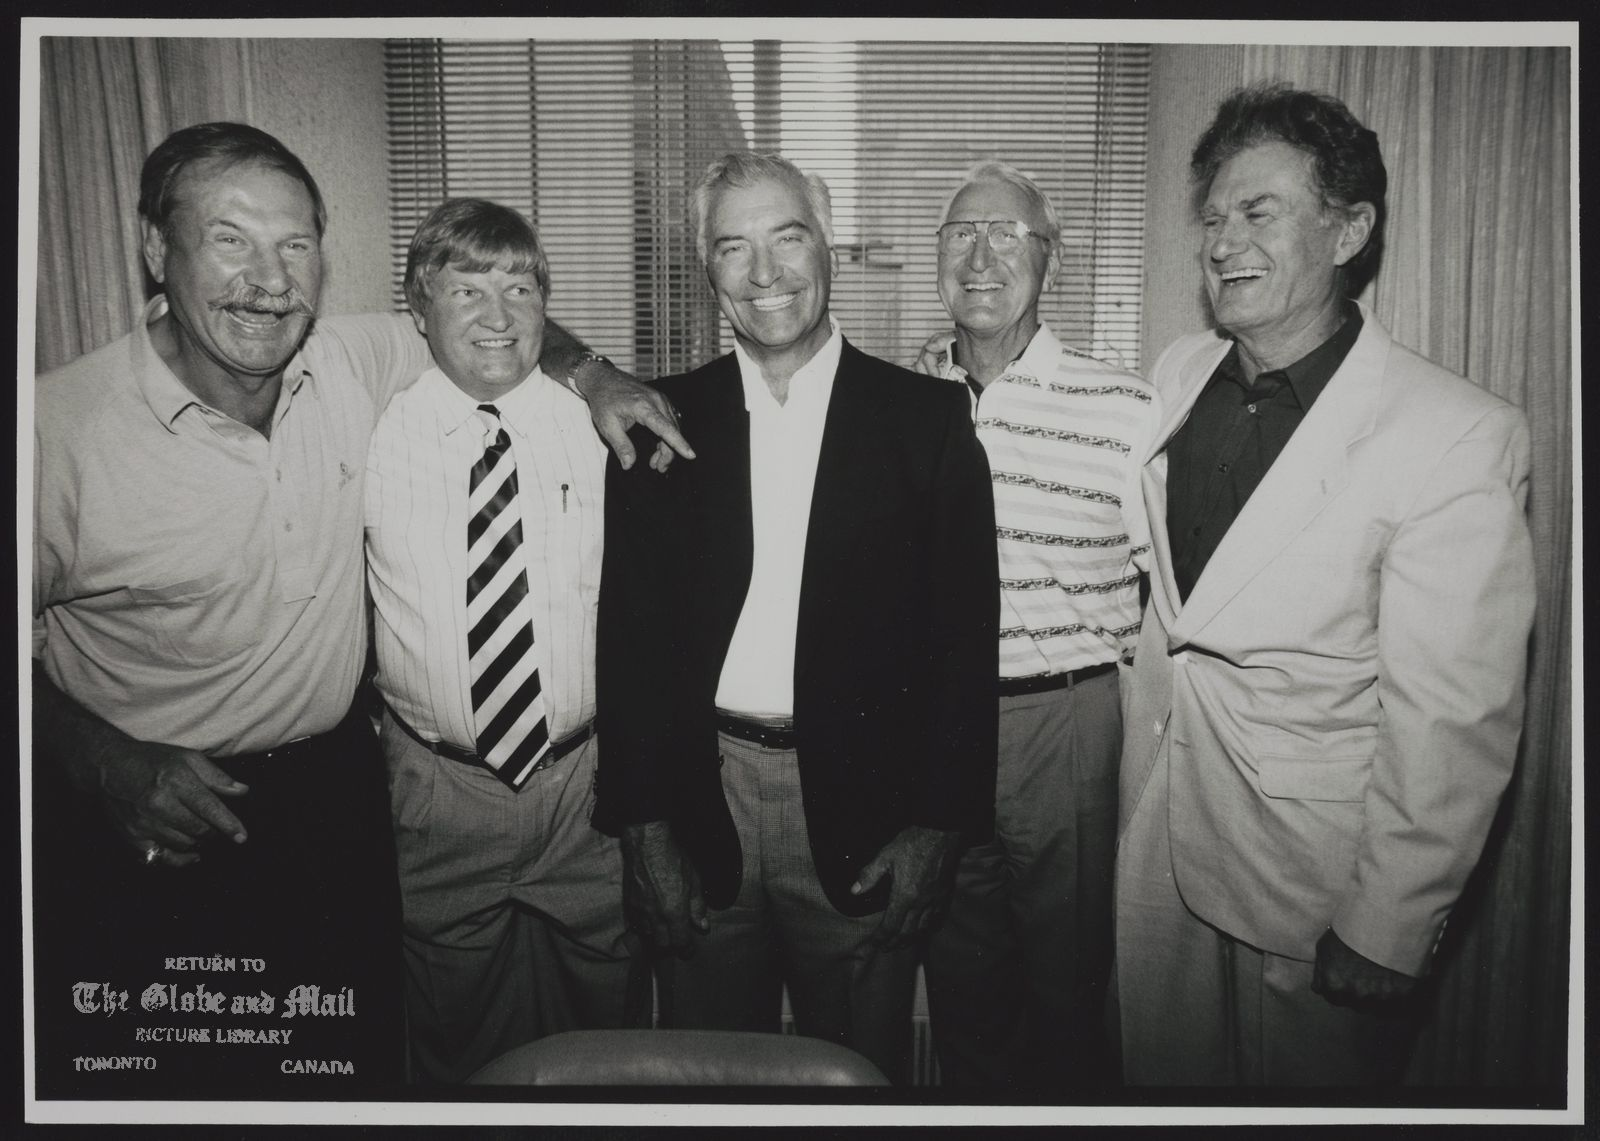 HOCKEY - OLDTIMERS A HAPPY GROUP OF FORMER NHL PLAYERS GATHERED IN TORONTO YESTERDAY TO CELEBRATE THE NEWS THAT THE PENSIONS THEY HAD BEEN FIGHTING FOR HAVE BEEN REALIZED. FROM LEFT ARE EDDIE SHACK, KEITH McCREARY, ANDY BATHGATE, LEO REISE AND ALLAN STANLEY.